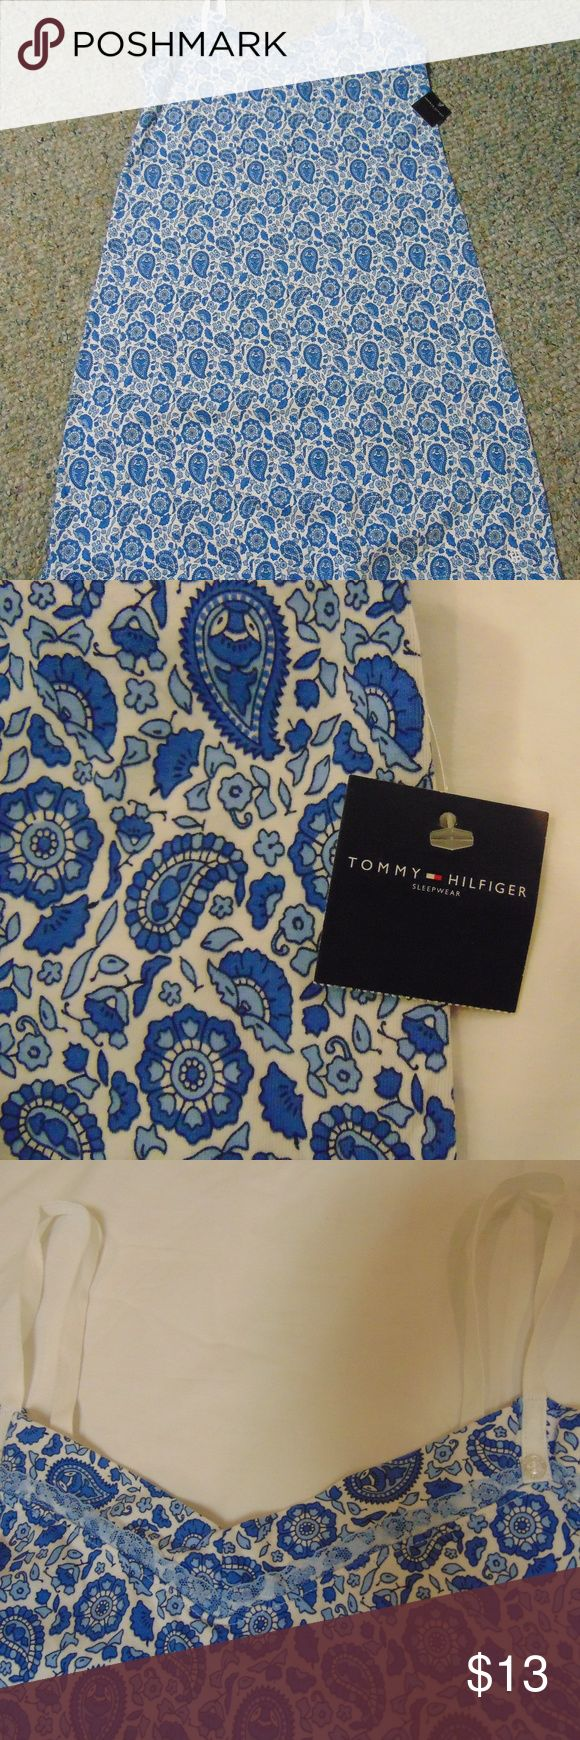 """Tommy Hilfiger women's nightie New with tags!  Love this pretty print - shades of blue with white adjustable straps.  91% cotton/9% spandex.  15.5"""" from armpit to armpit.  From a smoke free home.  Thanks for browsing! :) Tommy Hilfiger Intimates & Sleepwear Pajamas"""